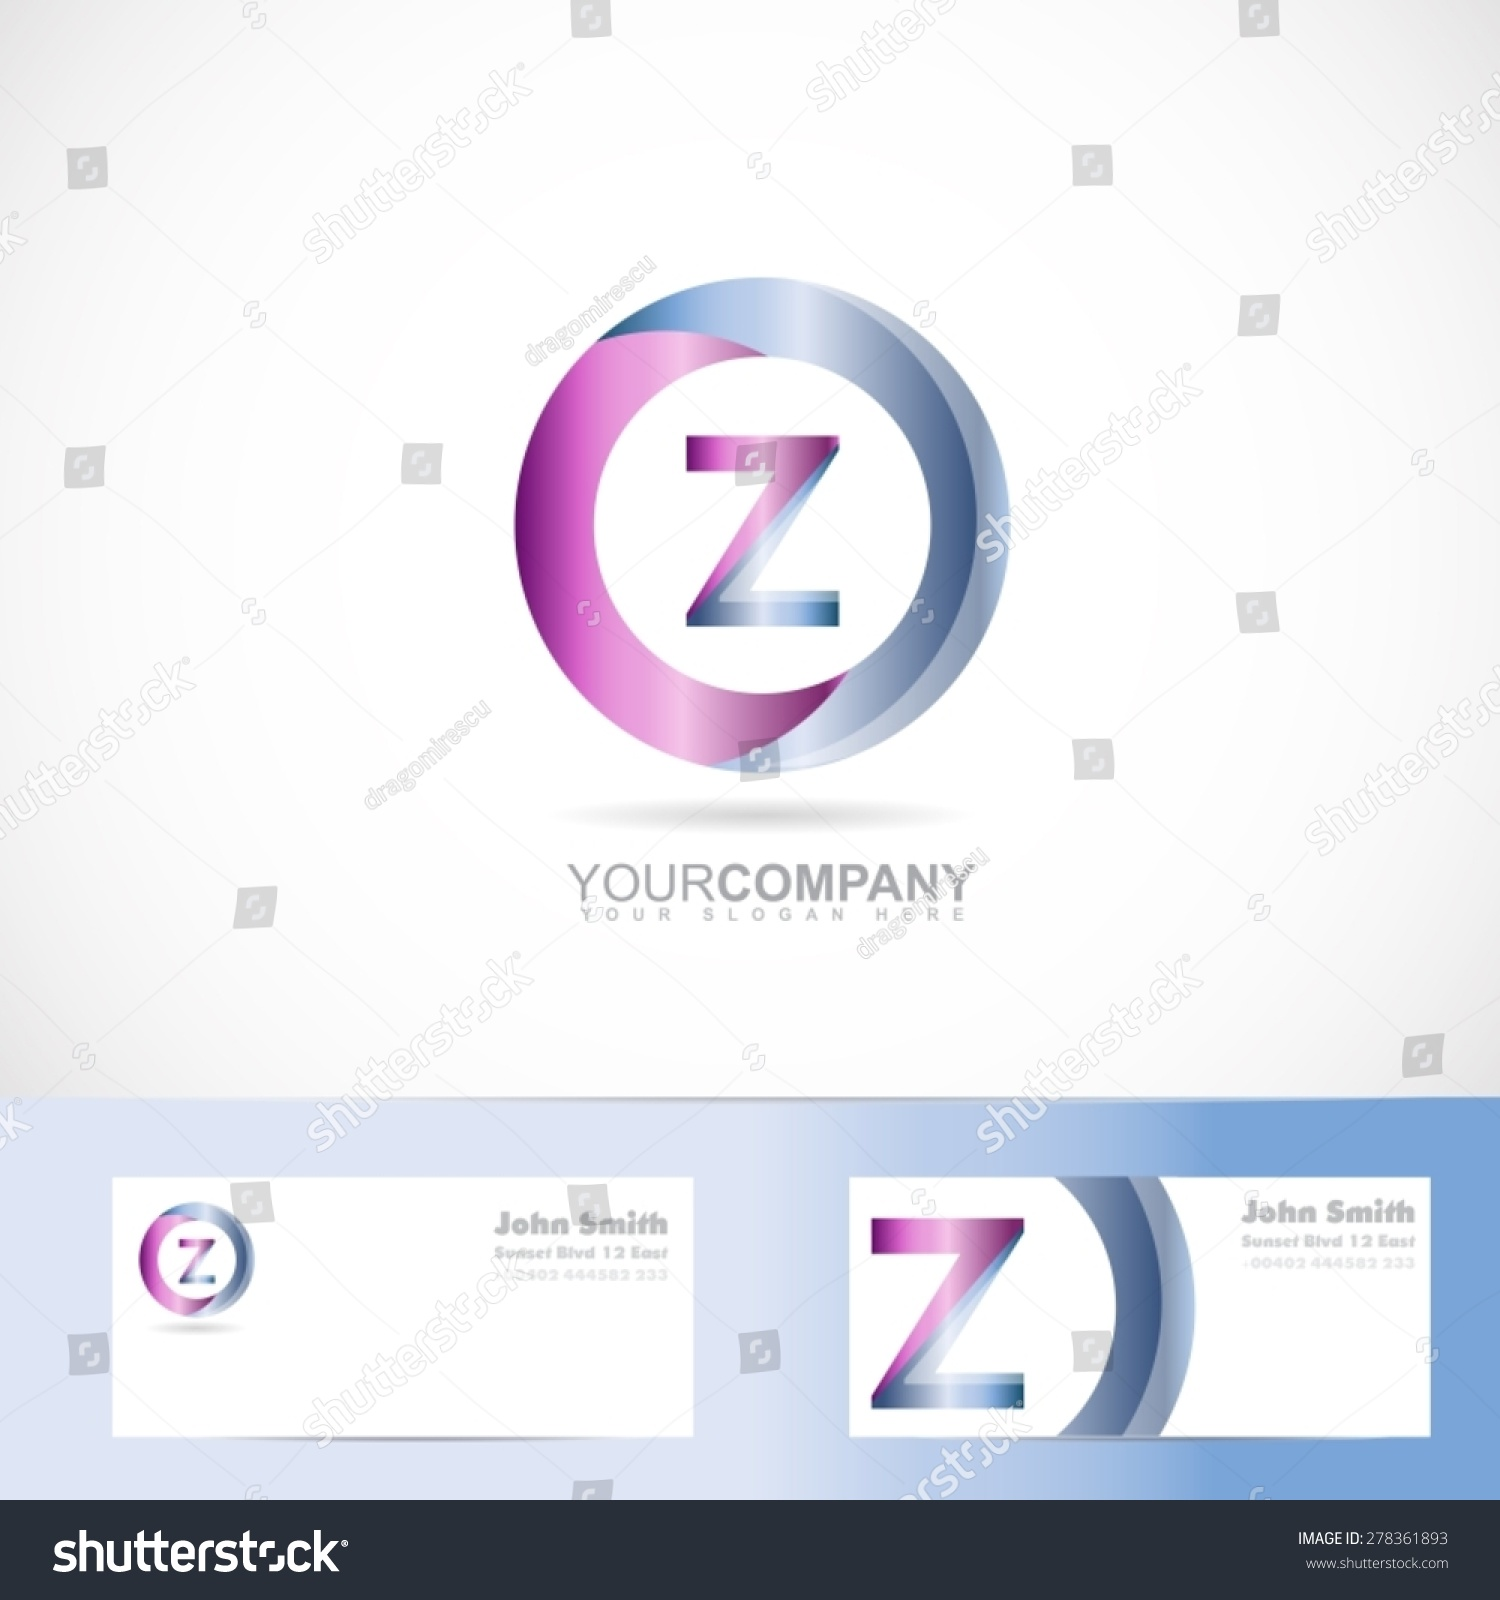 Lovely 1 Page Resumes Small 10 Envelope Template Indesign Round 100 Day Plan Template 10x13 Envelope Template Youthful 16x20 Collage Template Soft18th Birthday Invitation Templates Vector Logo Template Alphabet Letter Z Stock Vector 278361893 ..